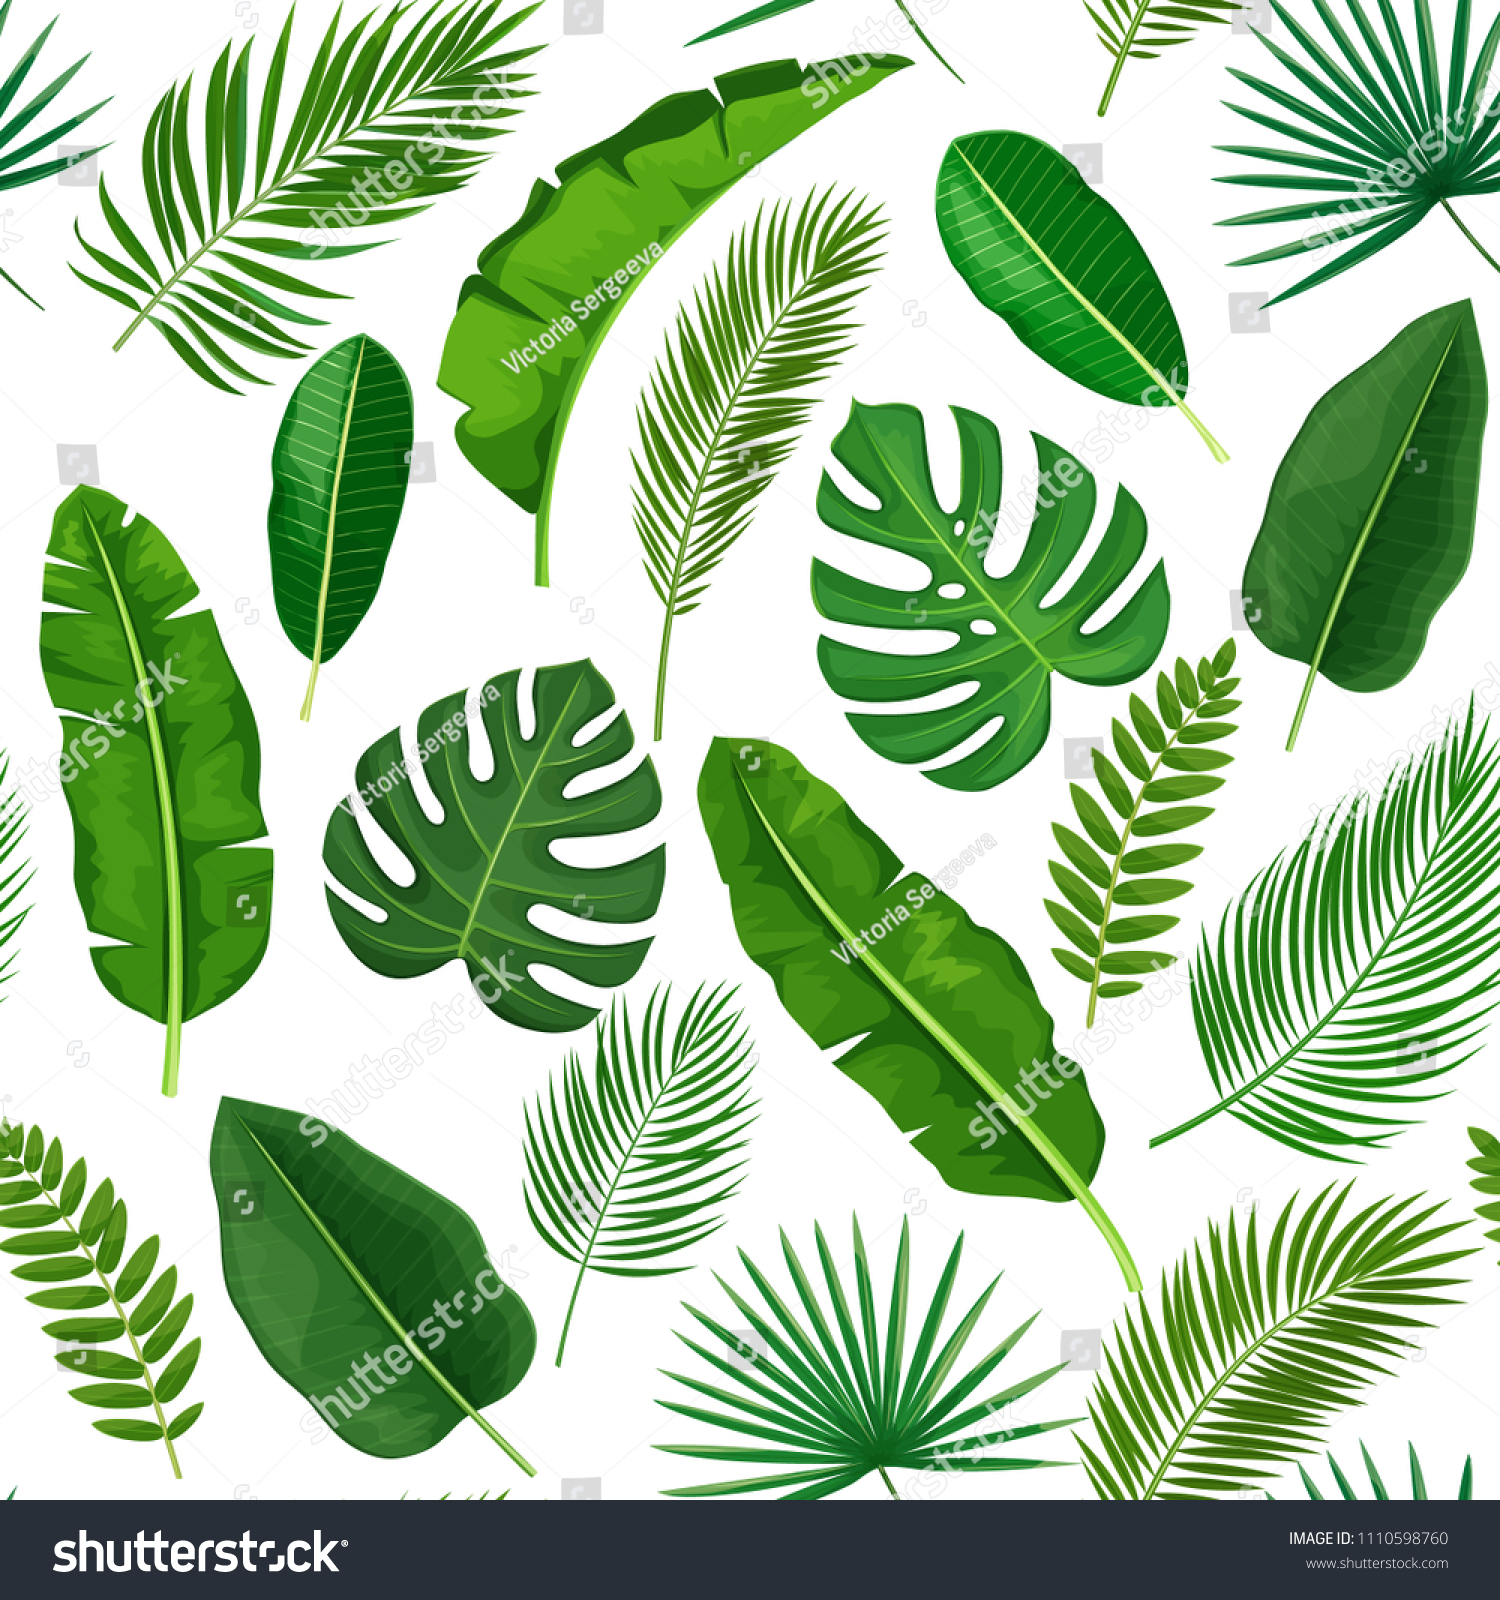 Vector Tropical Leaves Seamless Pattern Jungle Exotic Banana Leaf, Philodendron,